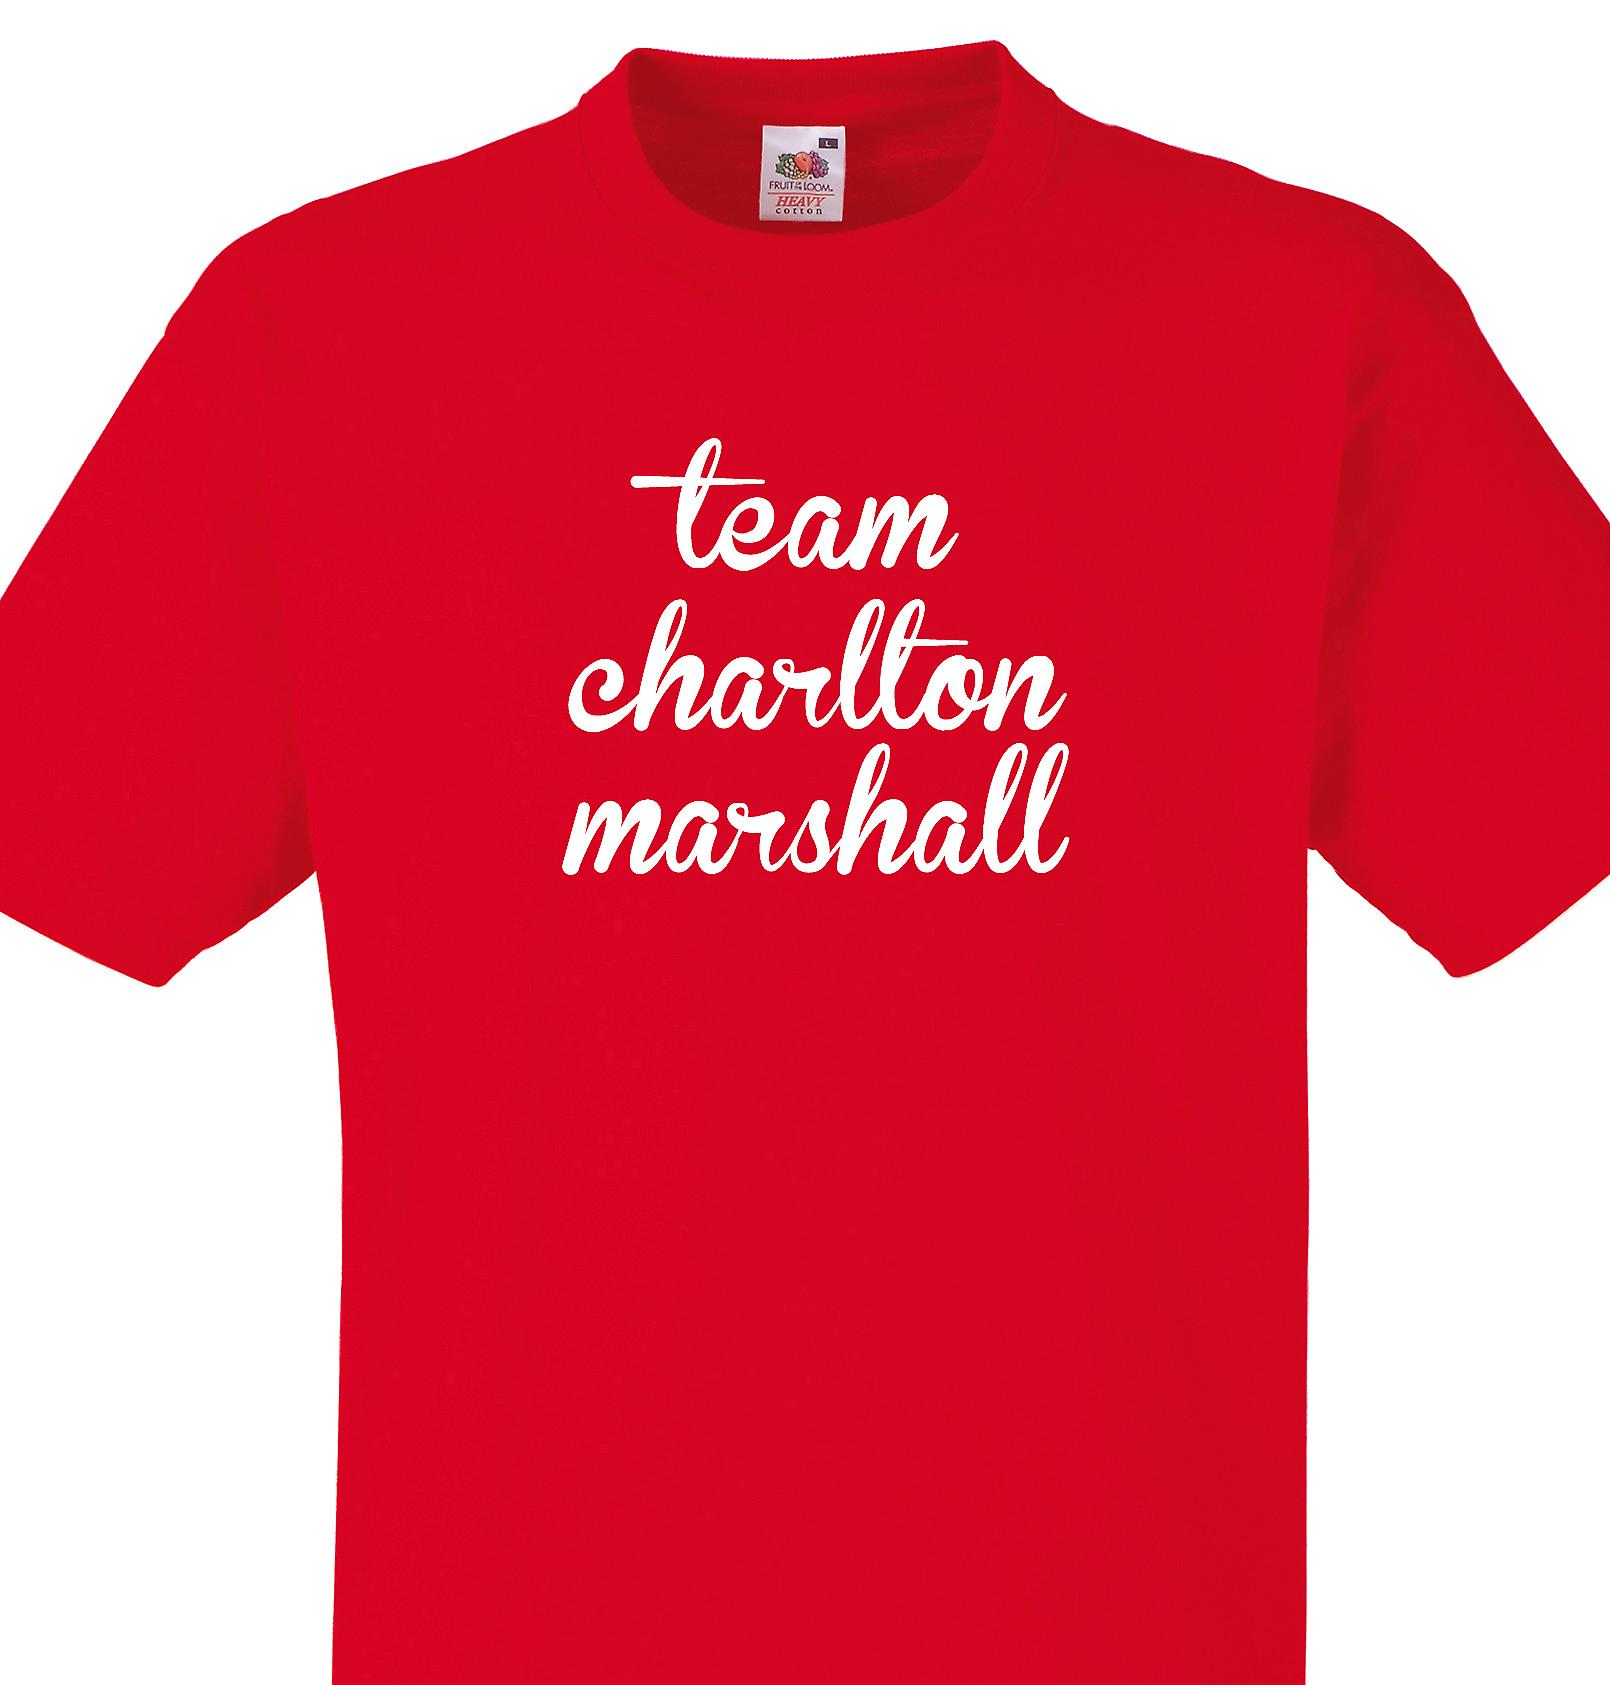 Team Charlton marshall Red T shirt